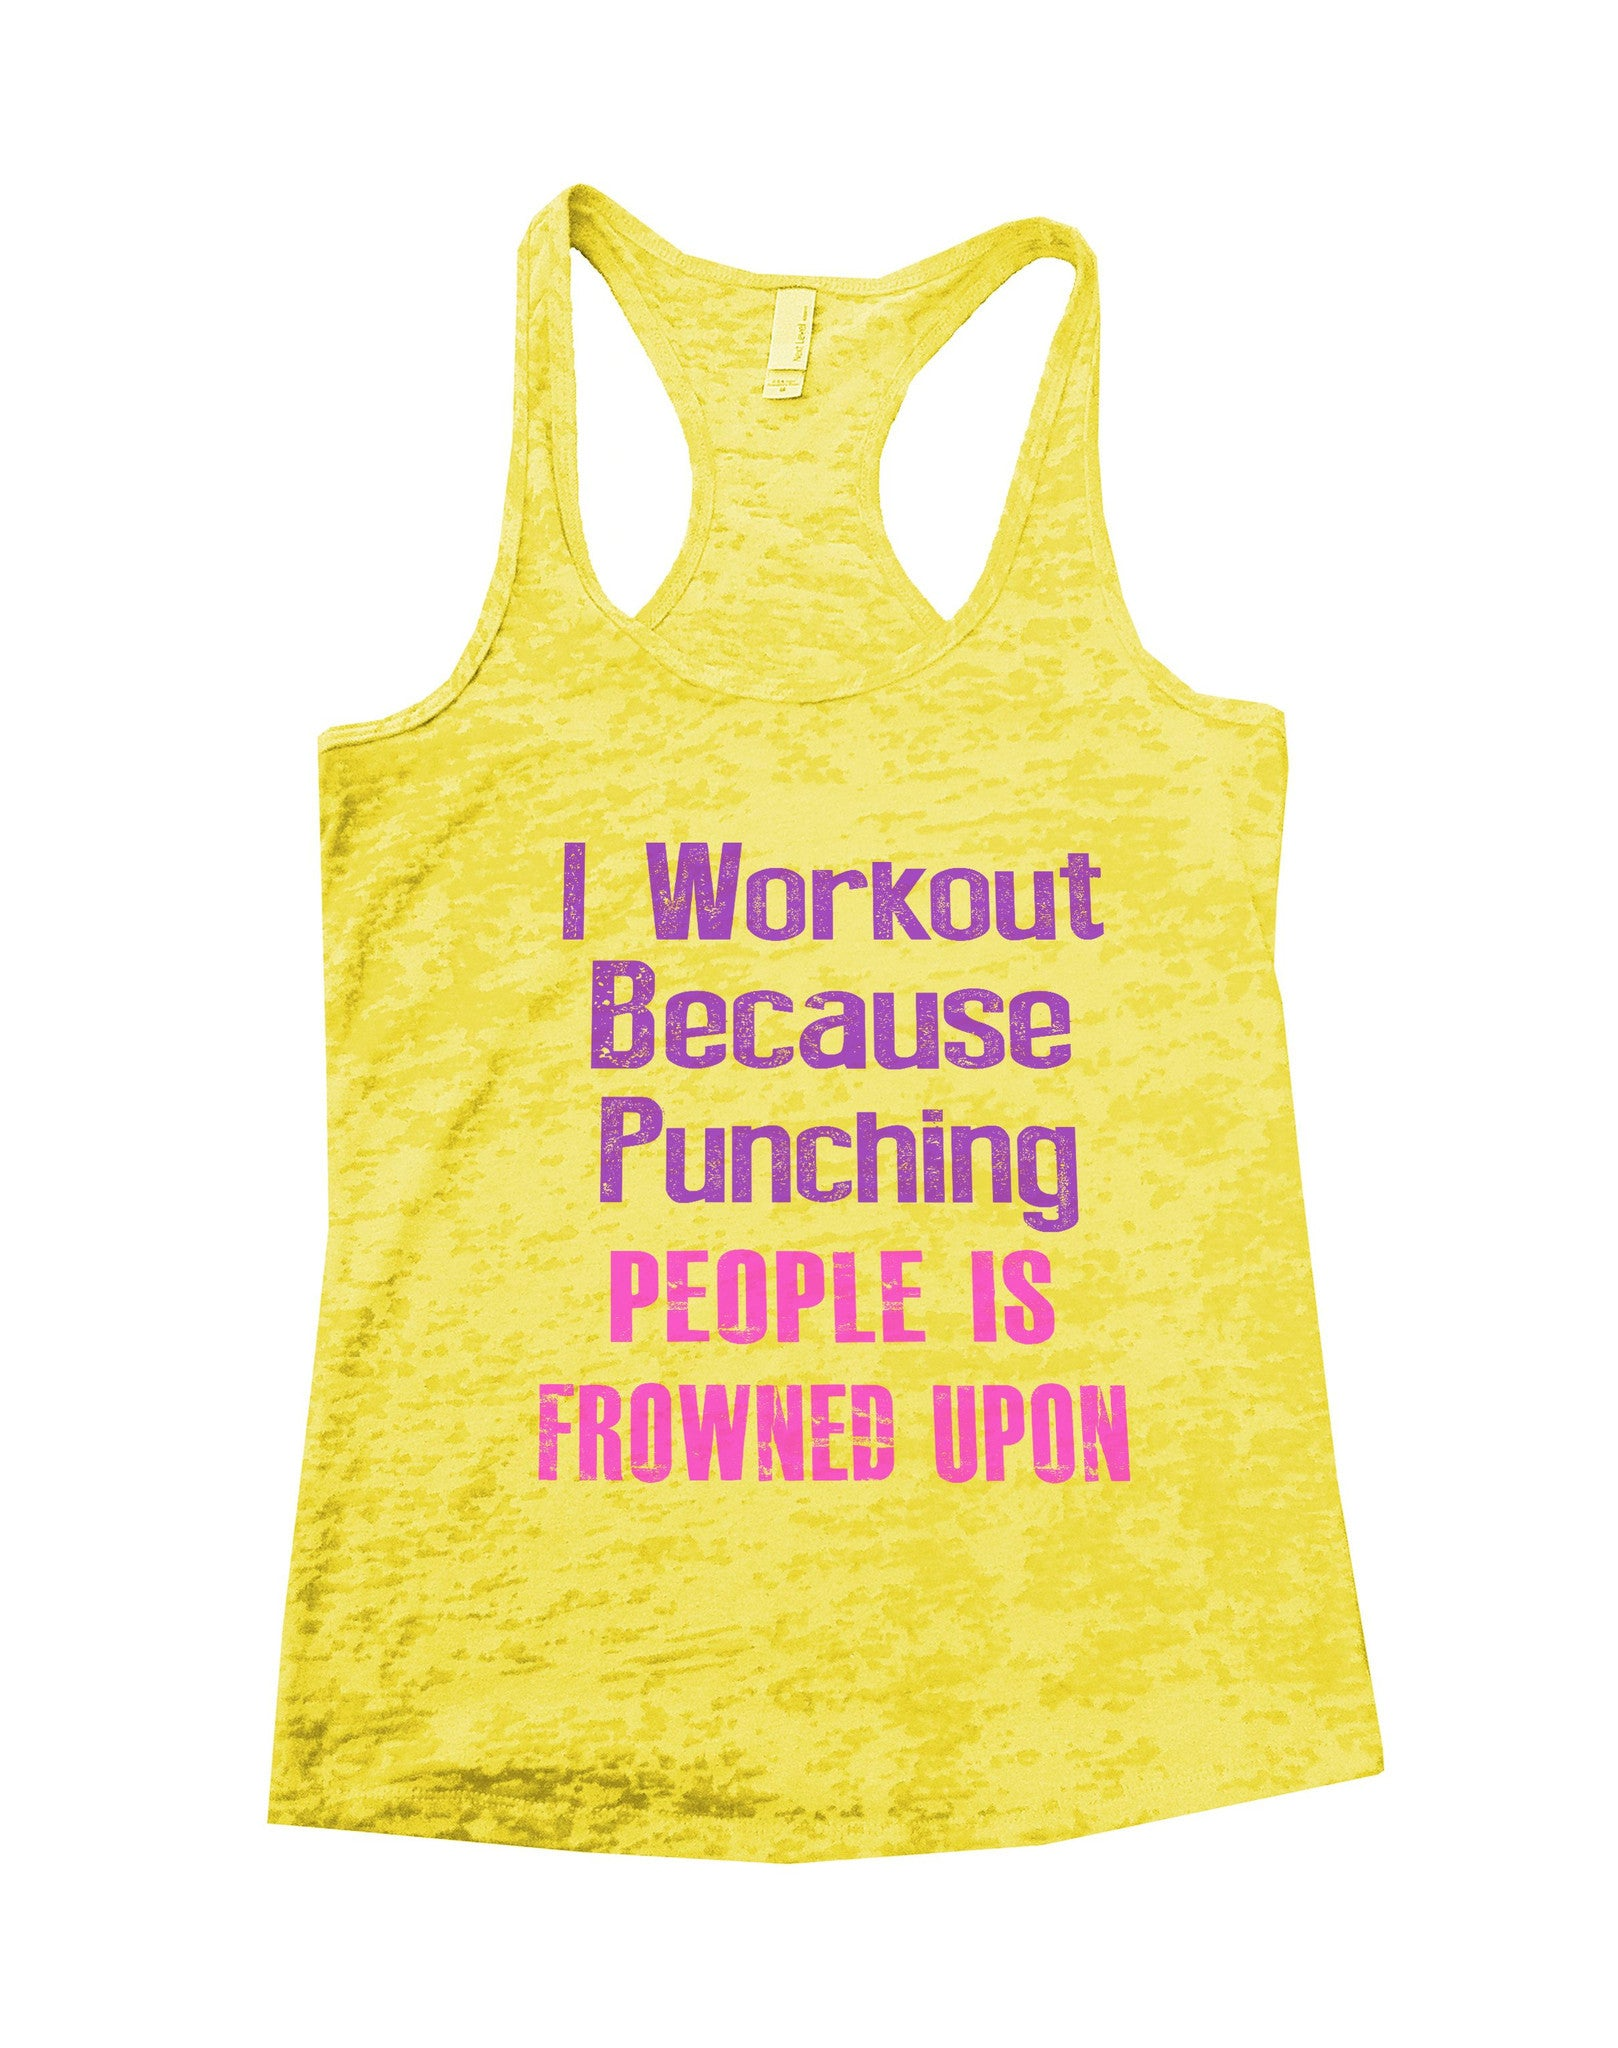 I Workout Because Punching People Is Frowned Upon Burnout Tank Top By BurnoutTankTops.com - 681 - Funny Shirts Tank Tops Burnouts and Triblends  - 6